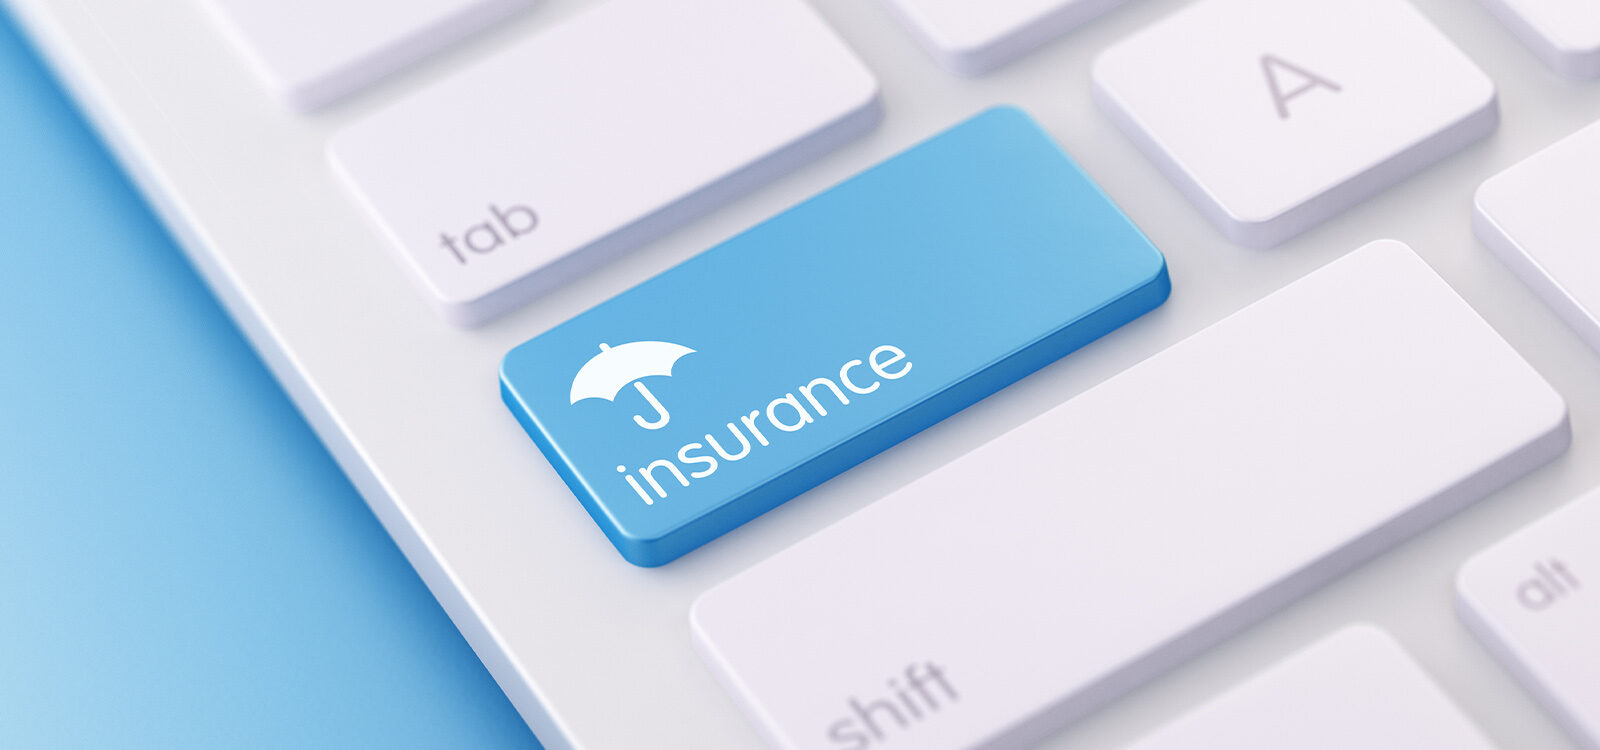 General Insurance profits up on last year, but big challenges ahead